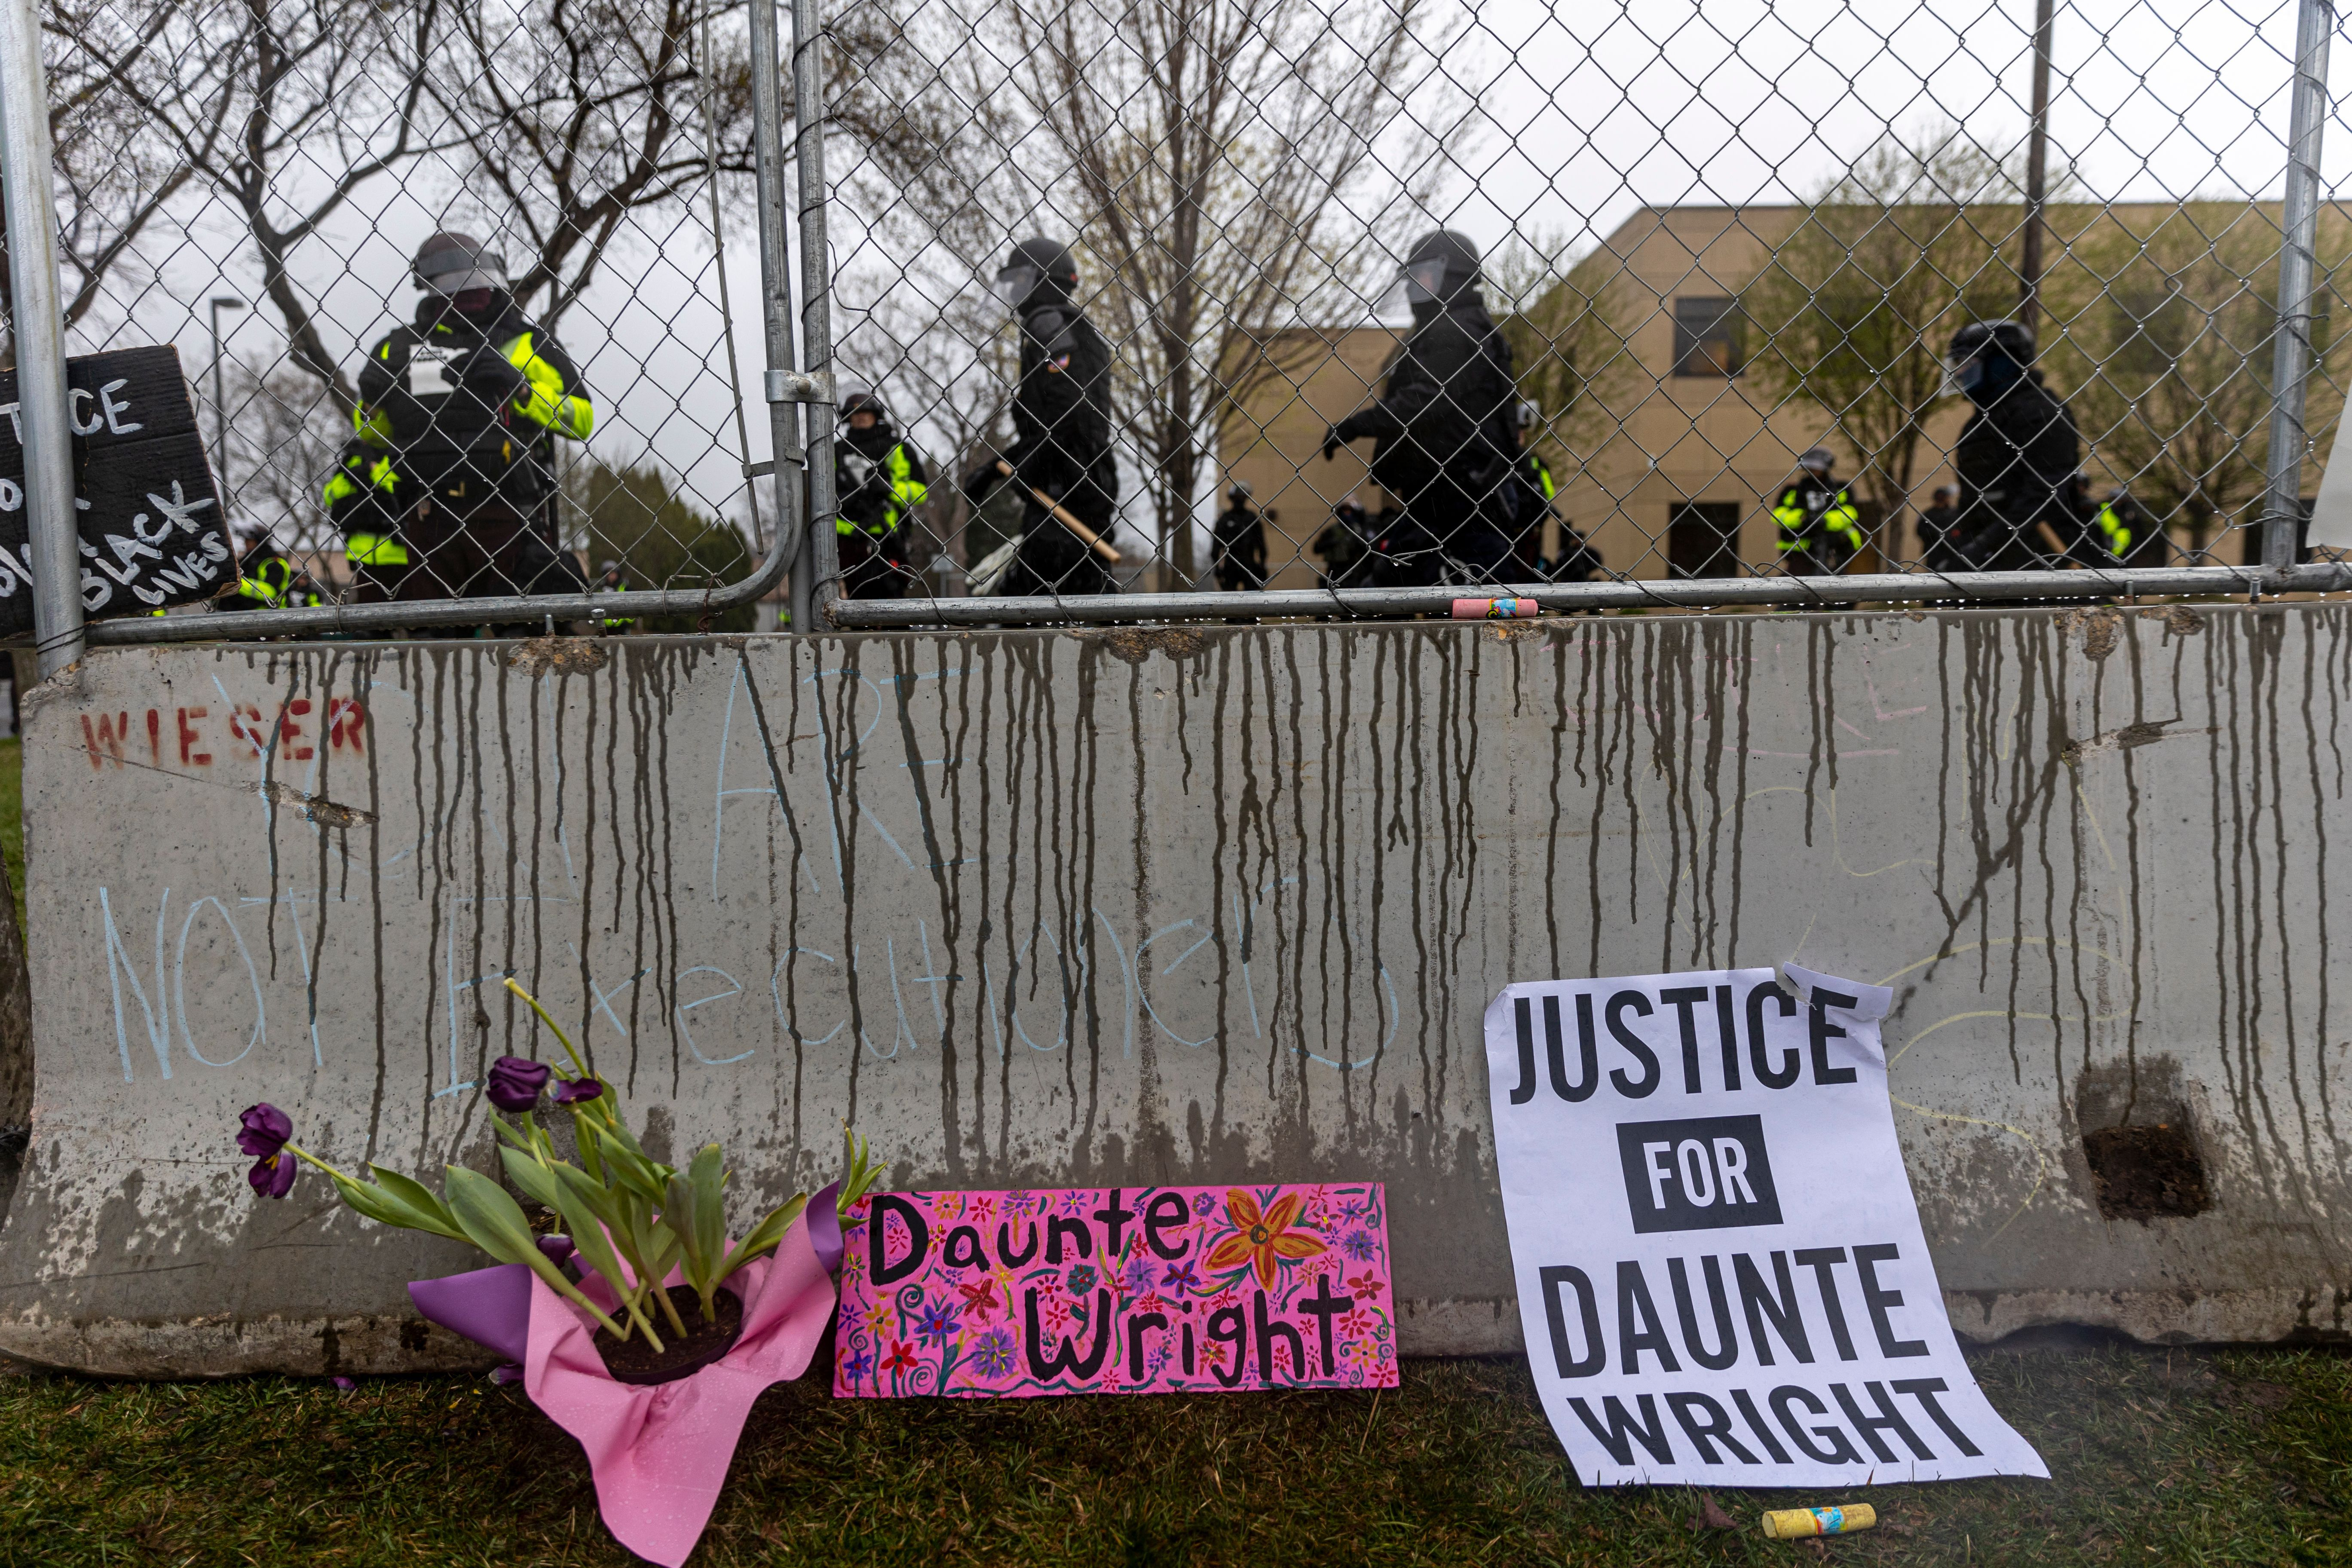 Flowers and signs are left in front of the security fence at the start of curfew to protest the death of Daunte Wright who was shot and killed by a police officer in Brooklyn Center, Minnesota